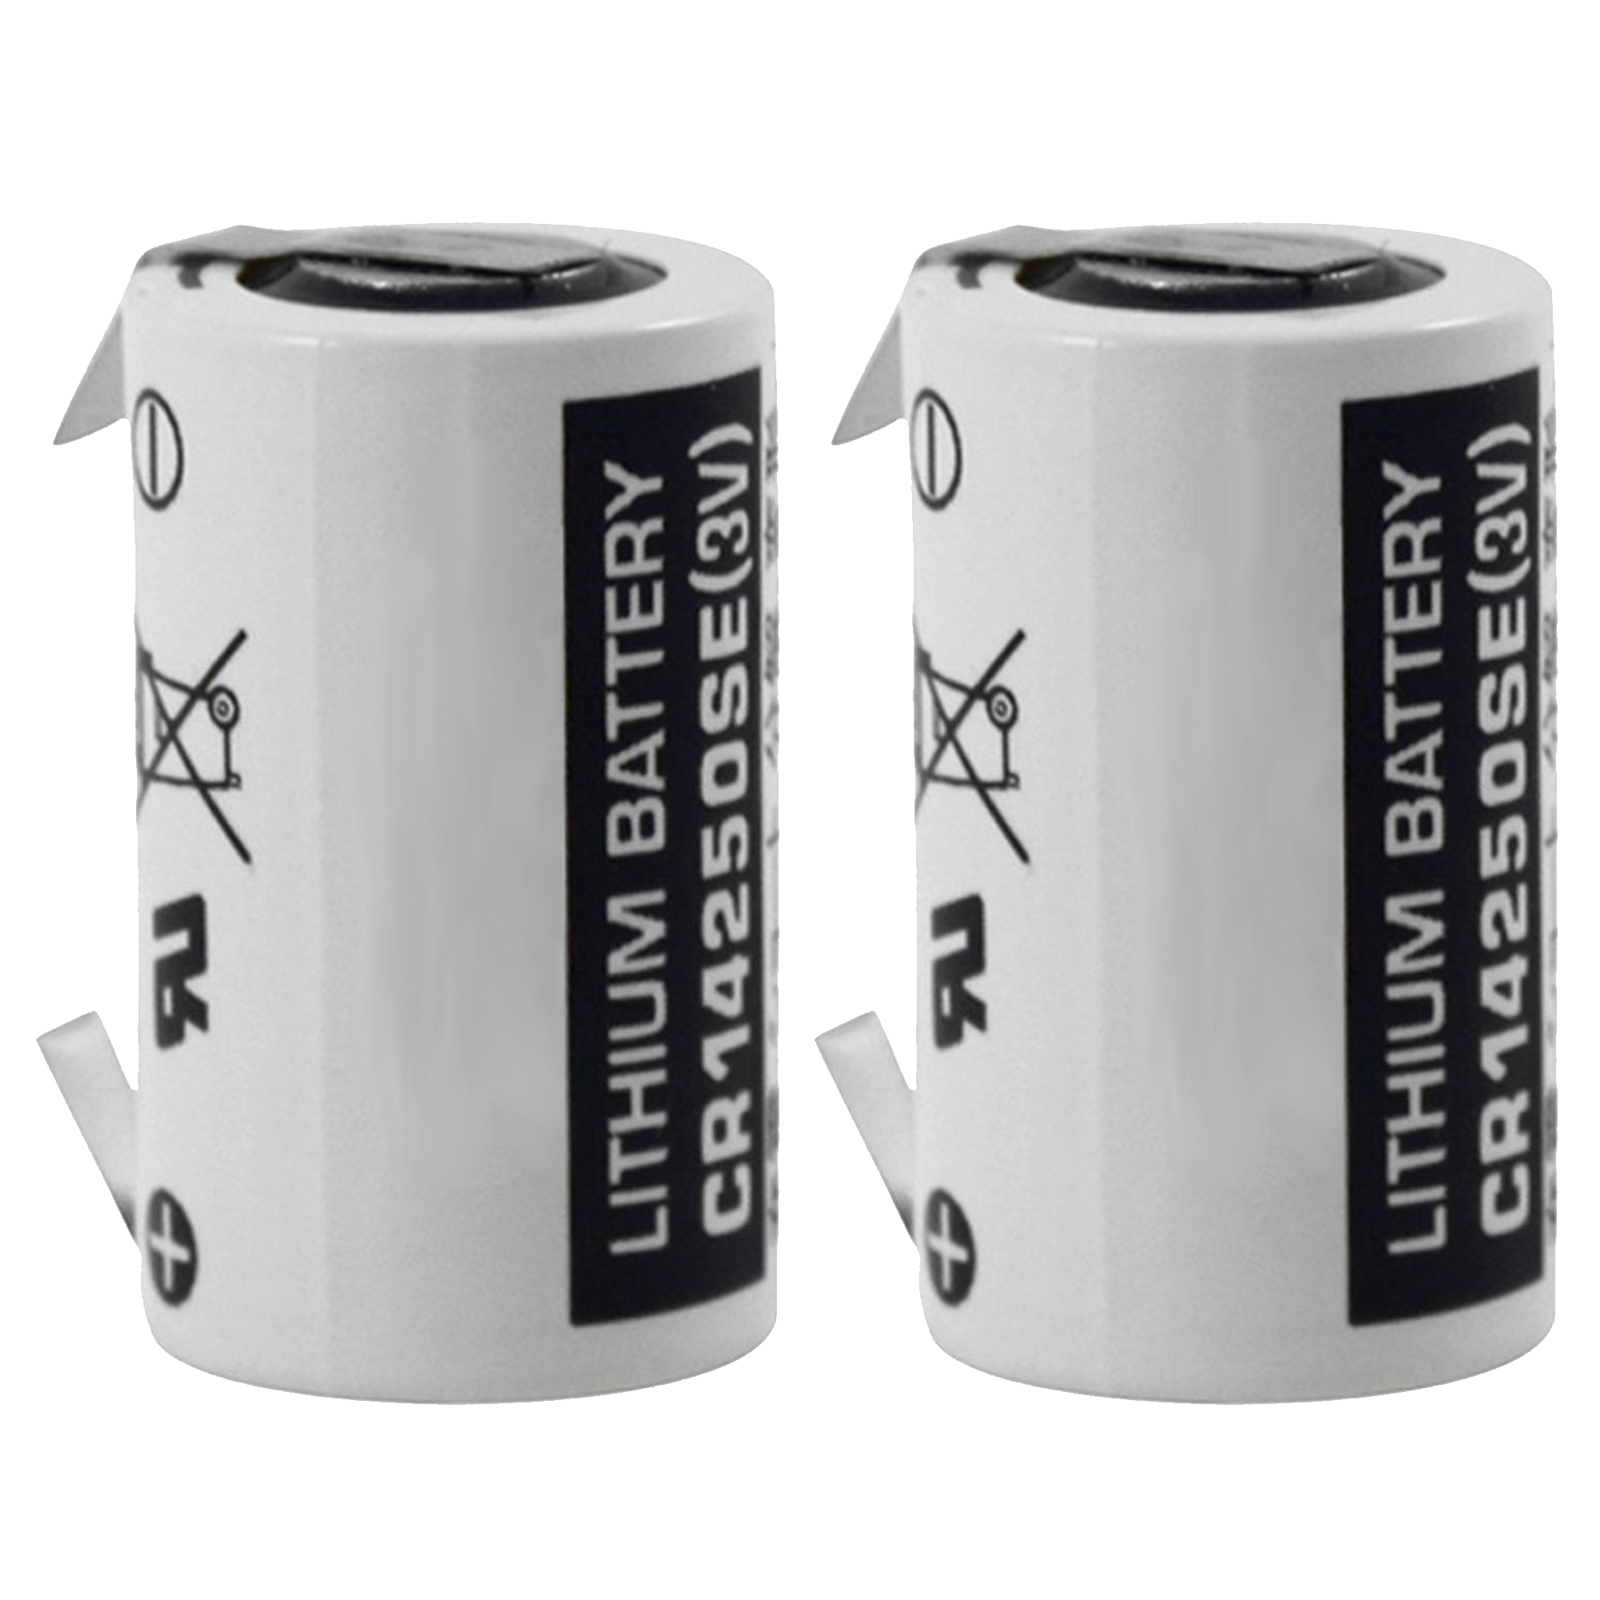 2pc fdk cr14250se t 3v 1 2 aa laser lithium battery with solder tabs usa ship ebay. Black Bedroom Furniture Sets. Home Design Ideas